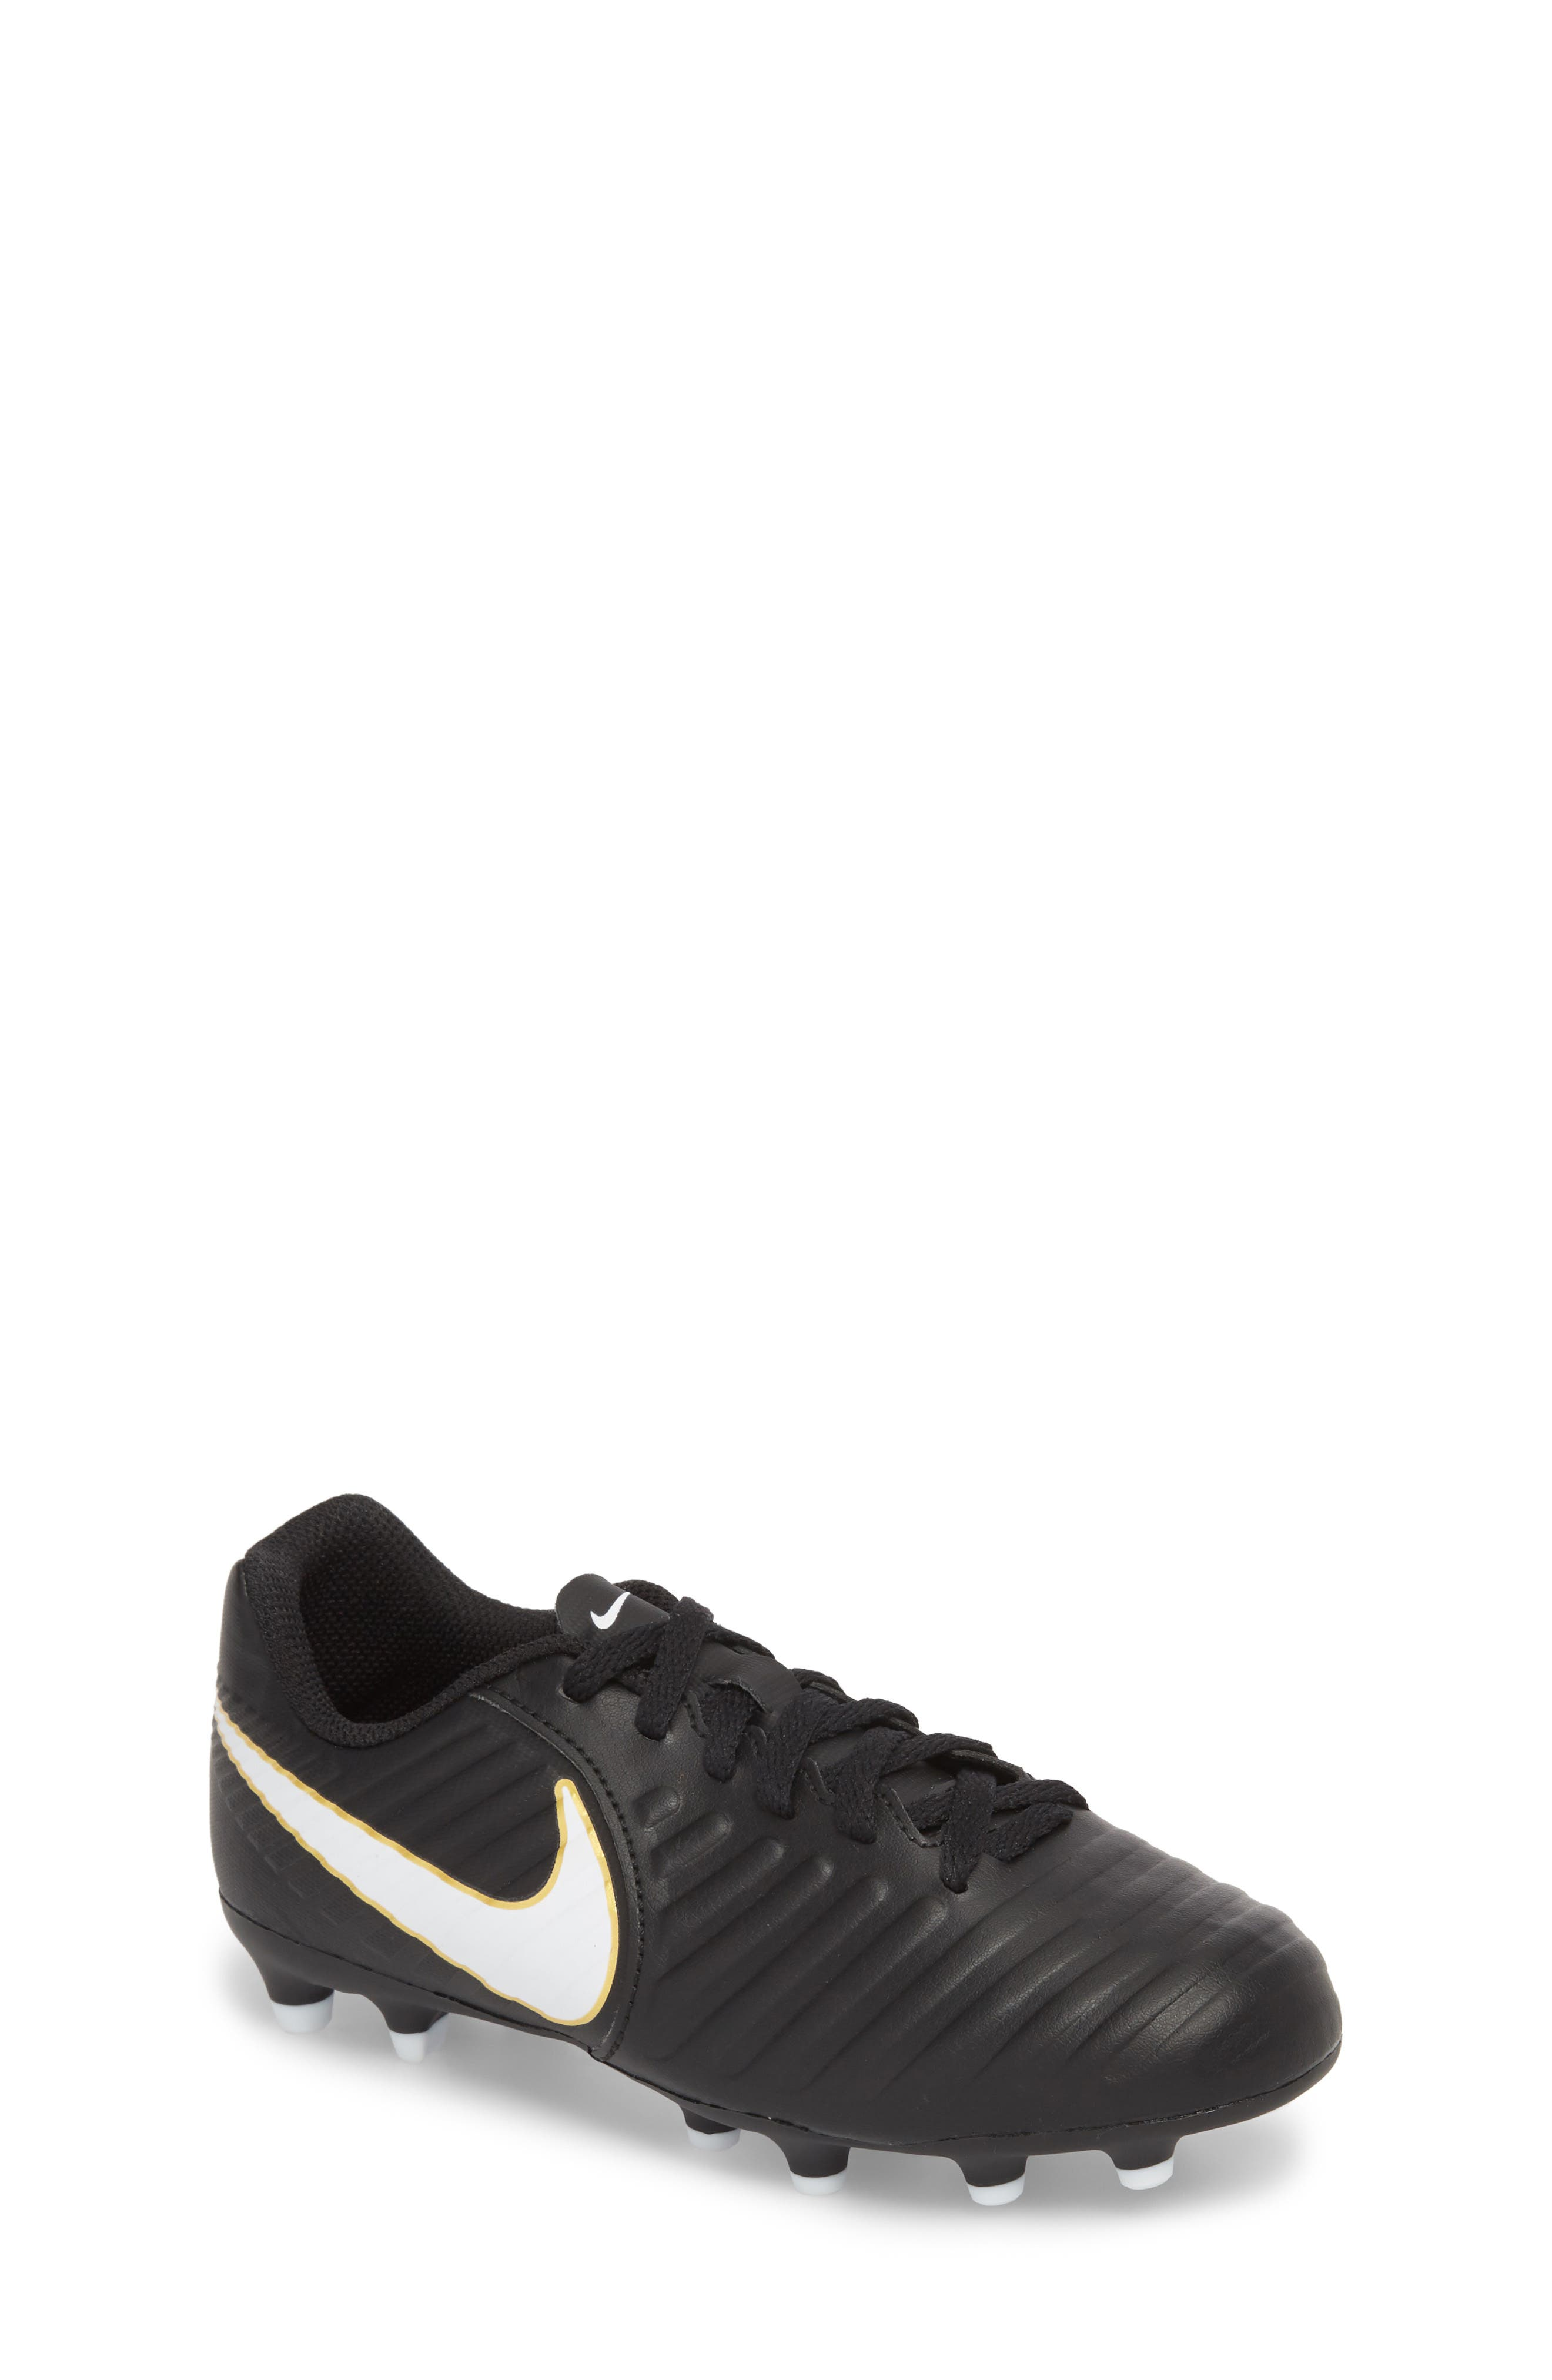 Nike Tiempo Legend 7 Club Firm Ground Soccer Shoe (Toddler, Little Kid & Big Kid)